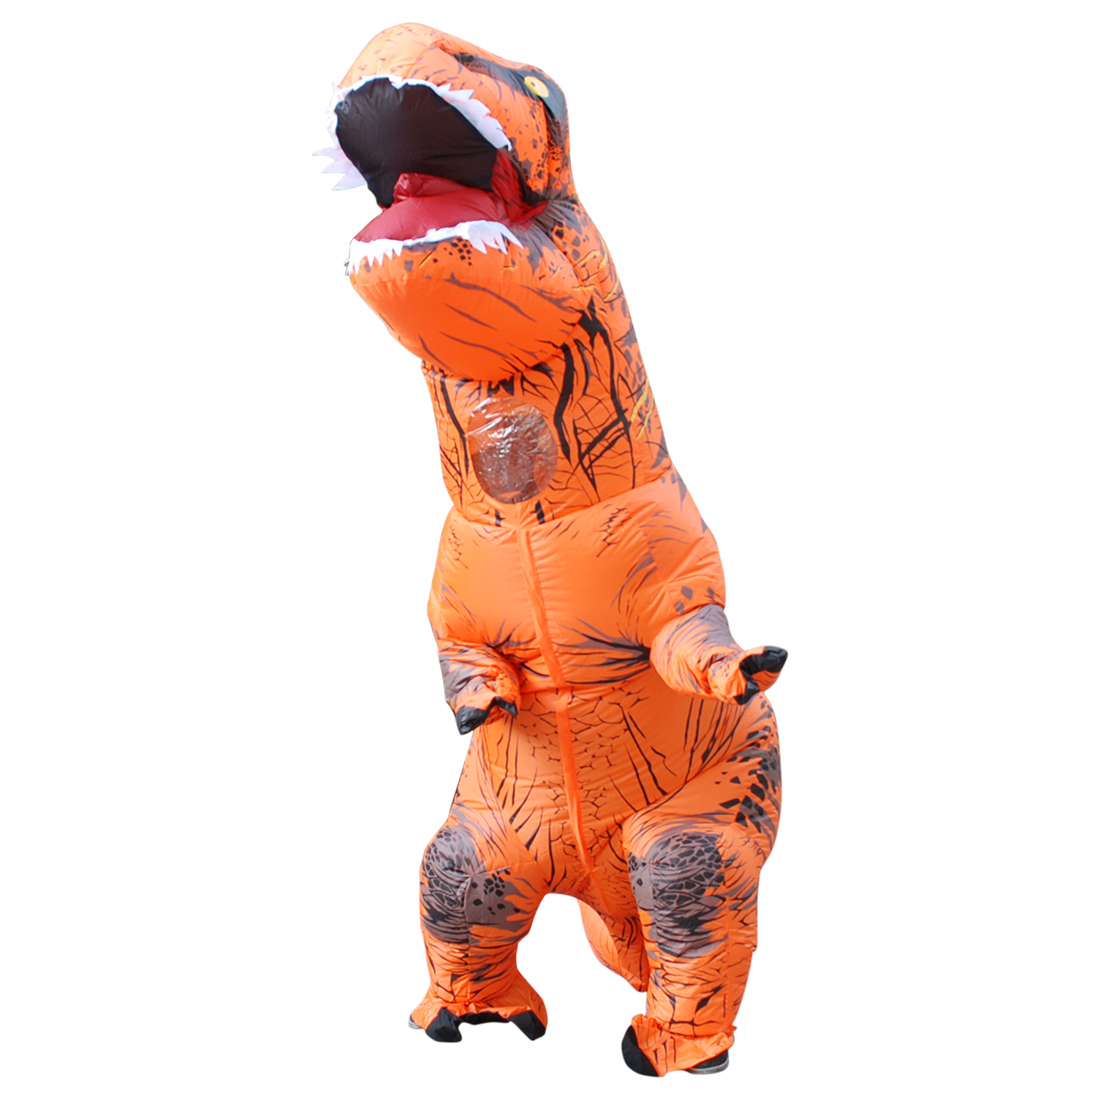 Purim Costumes Airblown Fan Operated T-Rex Inflatable Dinosaur Suit Outfit Costume for Women Adults Dino Rider love live cosplay